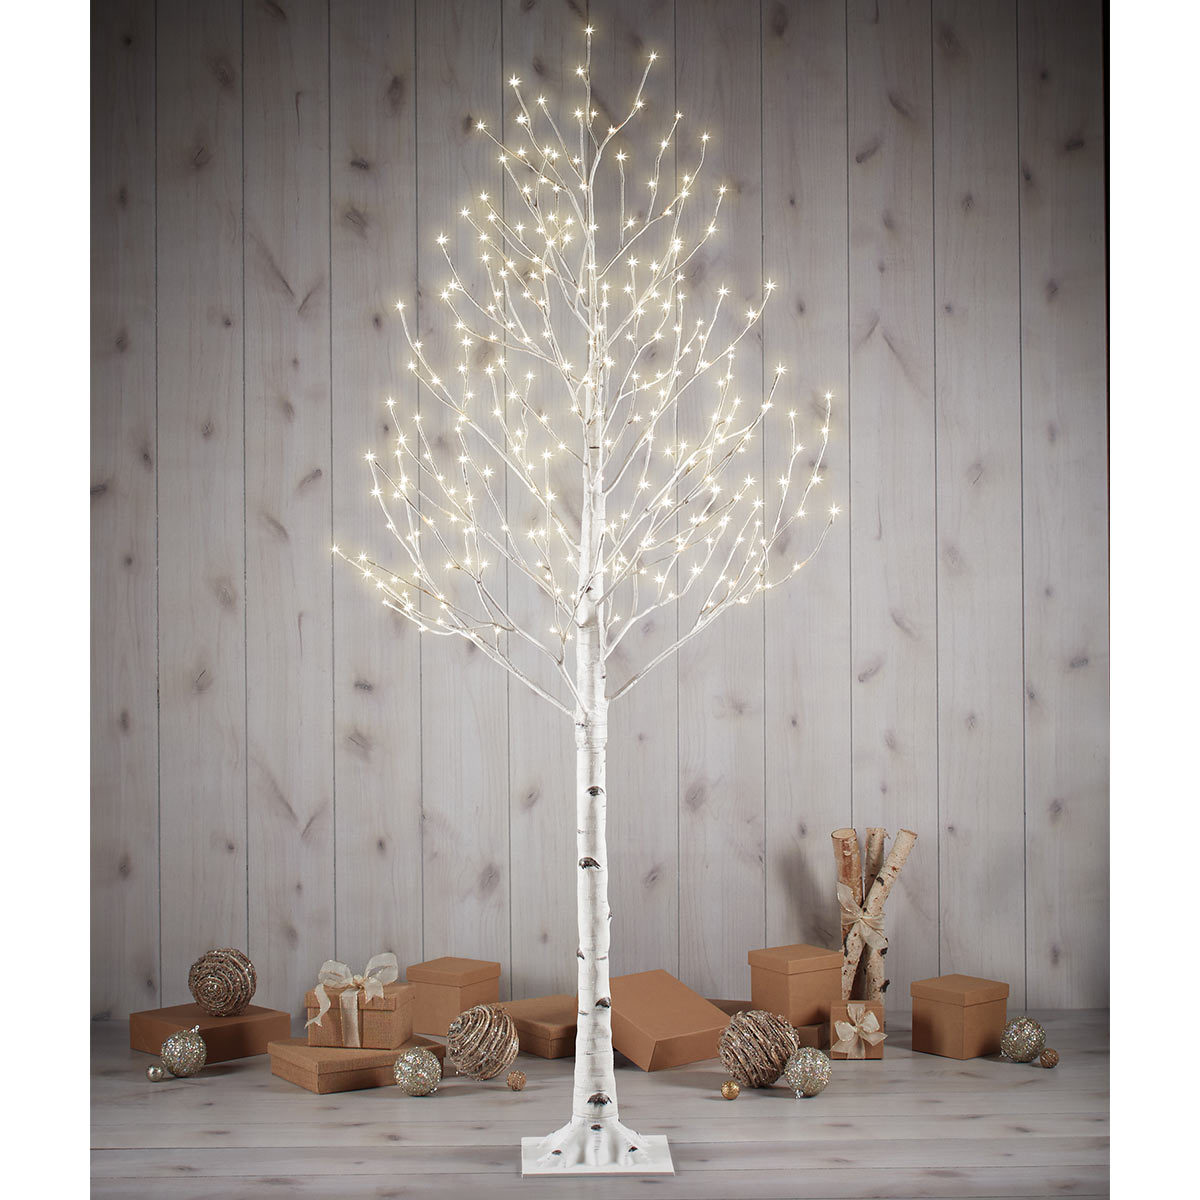 7ft 2 1 M Indoor Outdoor Fully Lit Birch Twig Tree With 280 Led Lights Costco Uk